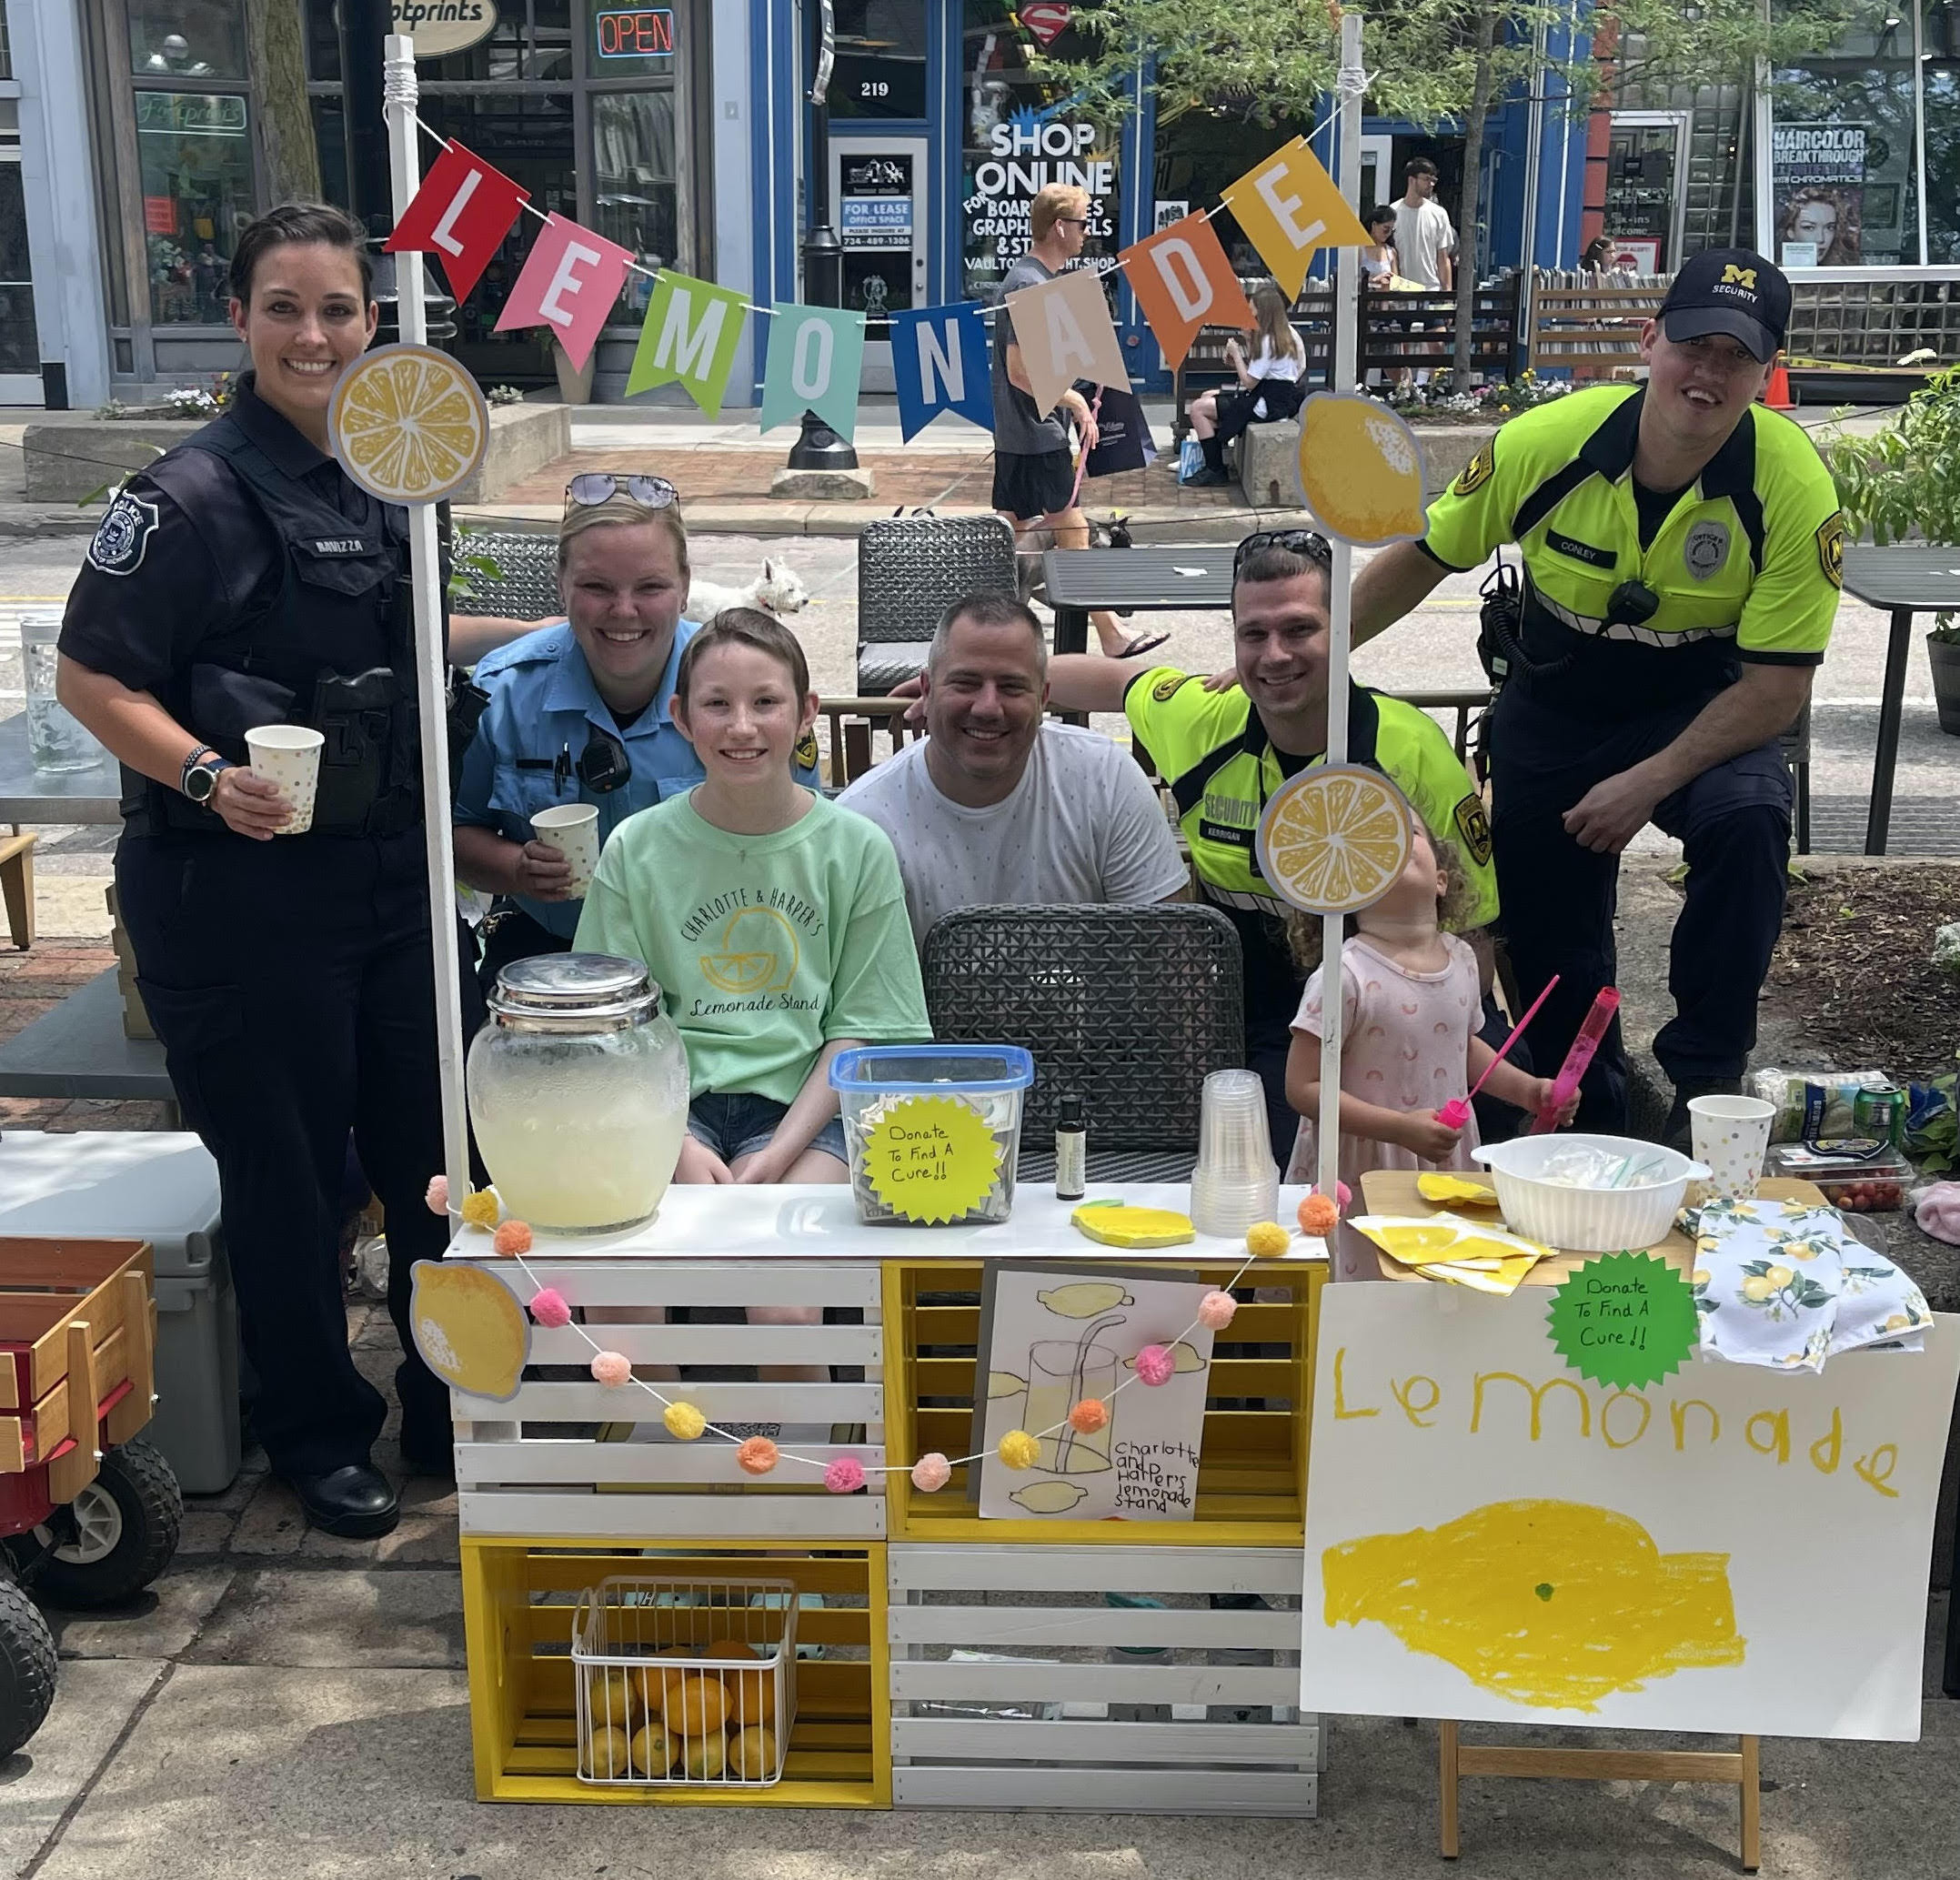 DPSS police and security officers stopped by to support our Ann Arbor Police colleagues and their children at their downtown Ann Arbor lemonade stand to raise money for childhood cancer on June 13, 2021.